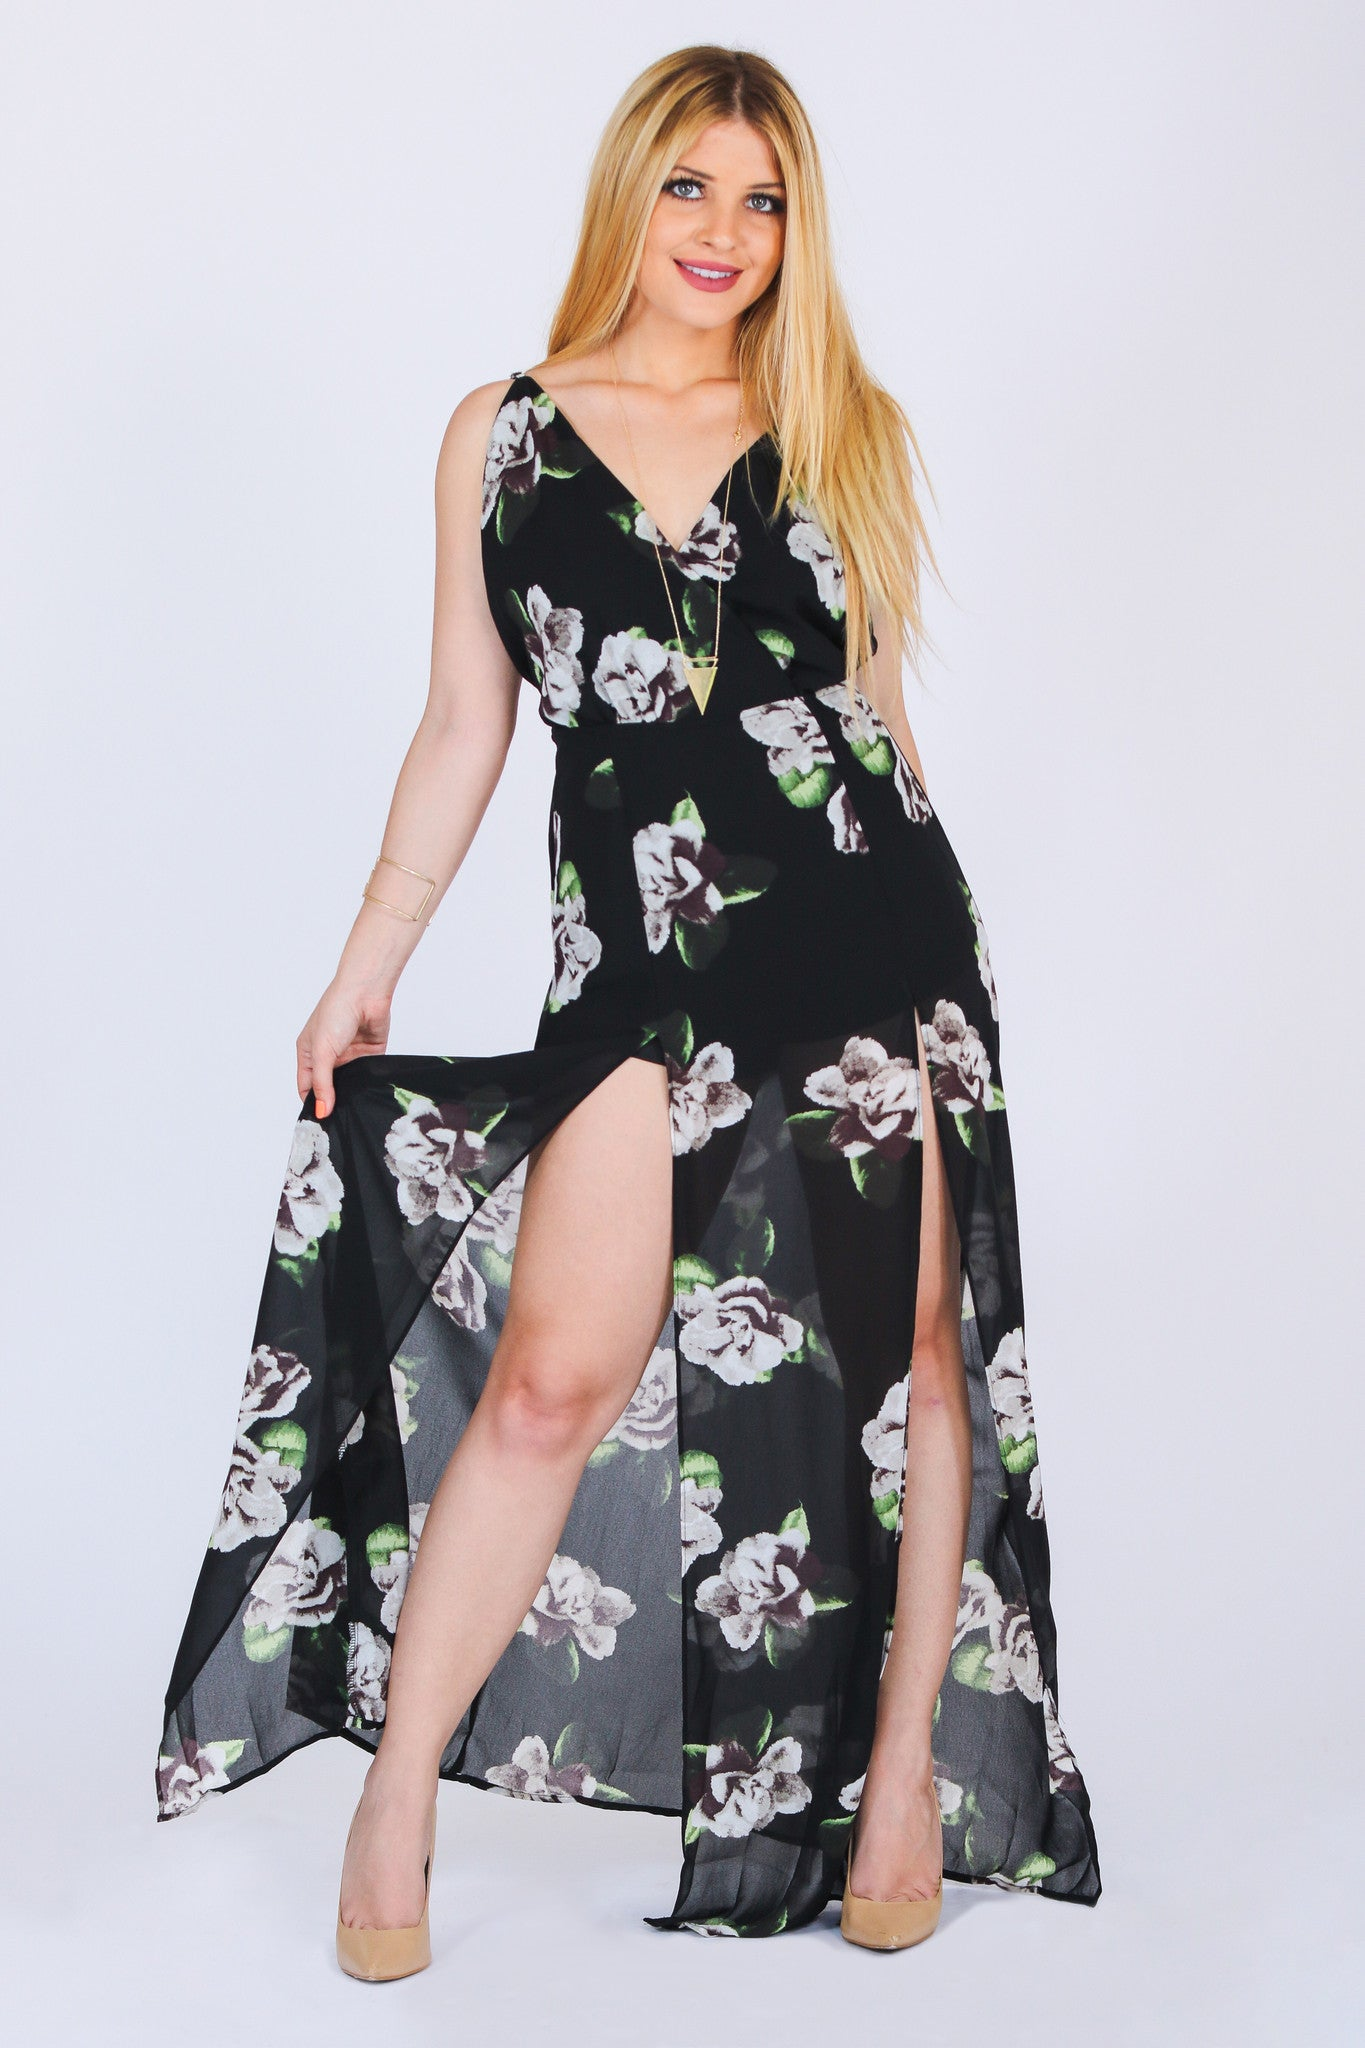 NIGHT QUEEN MAXI DRESS - Mod Owl